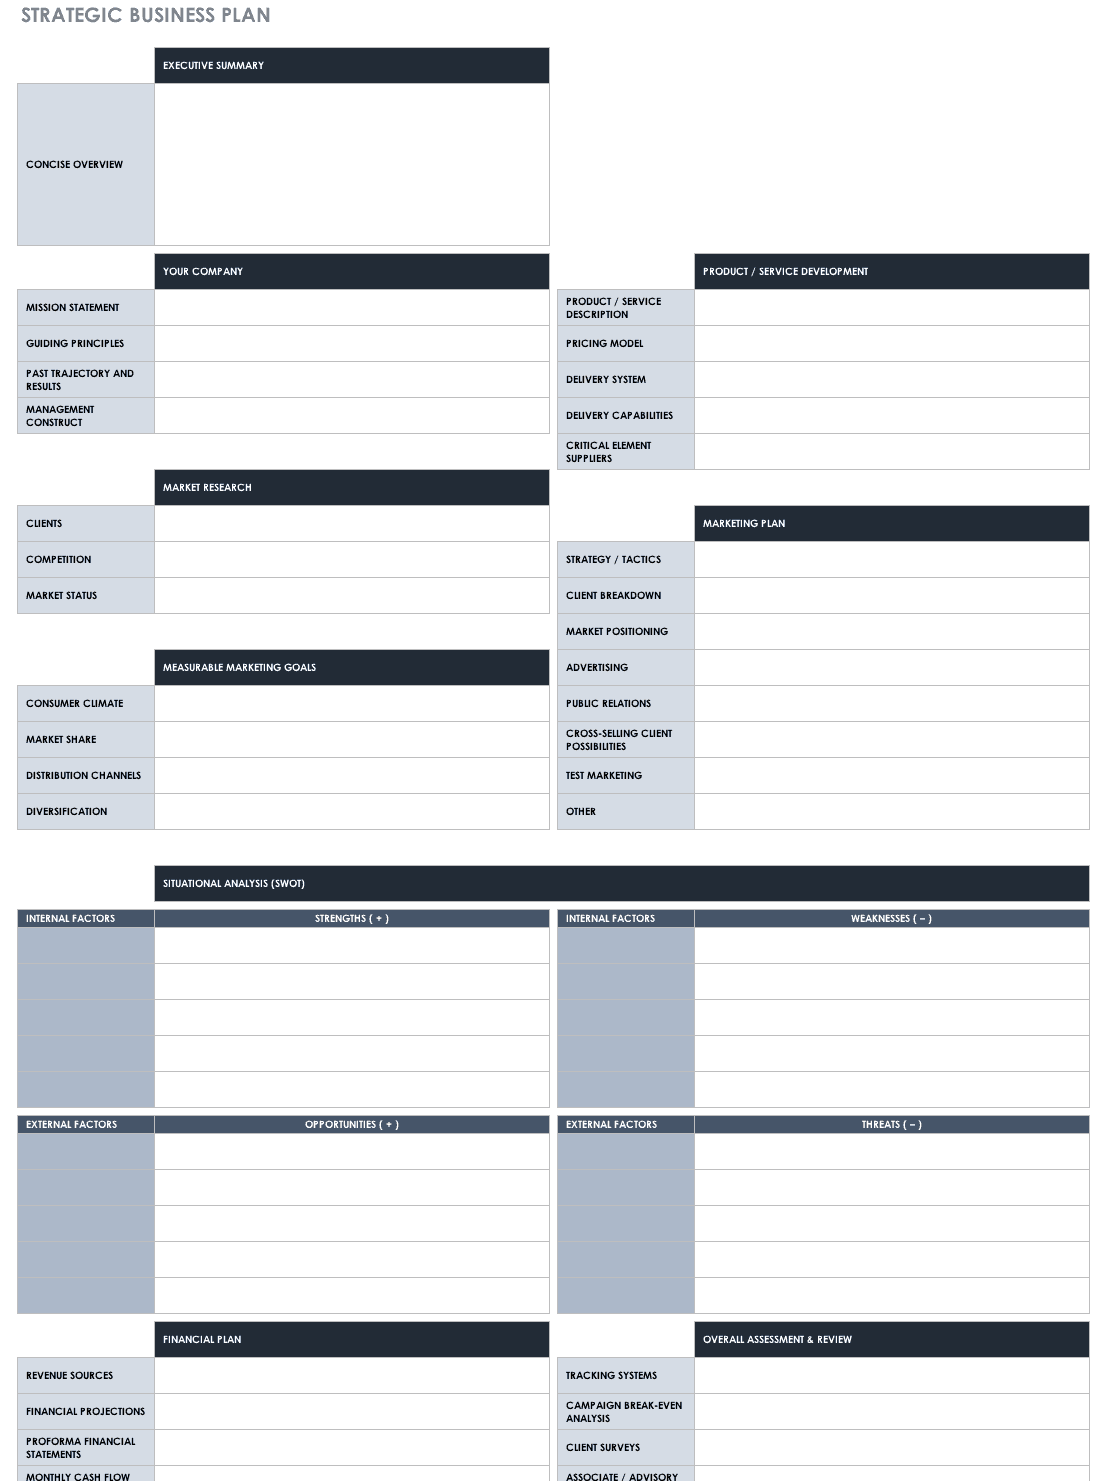 Free Strategic Planning Templates | Smartsheet